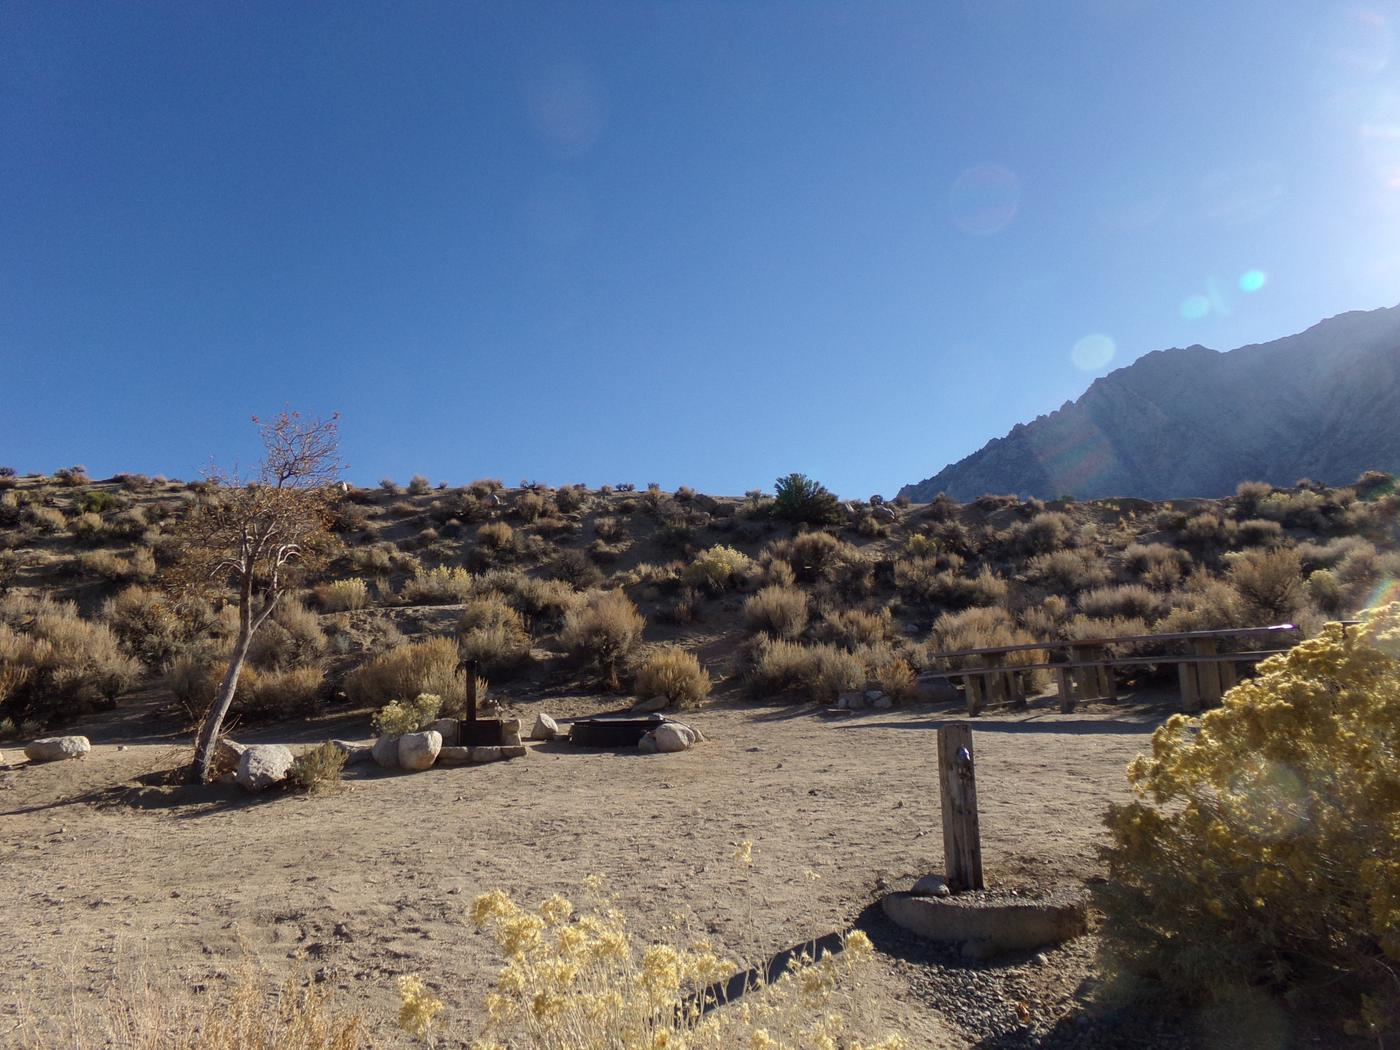 Mountain views from campsite #43, Lone Pine Campground.